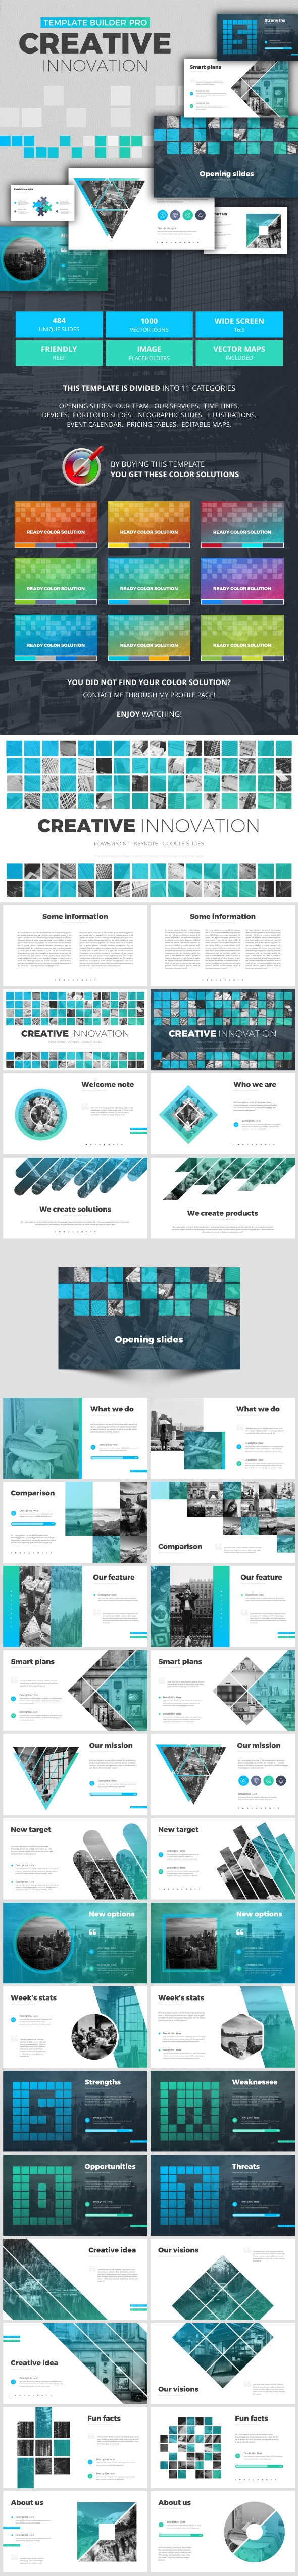 Creative Innovation - Google Slides Presentation Templates